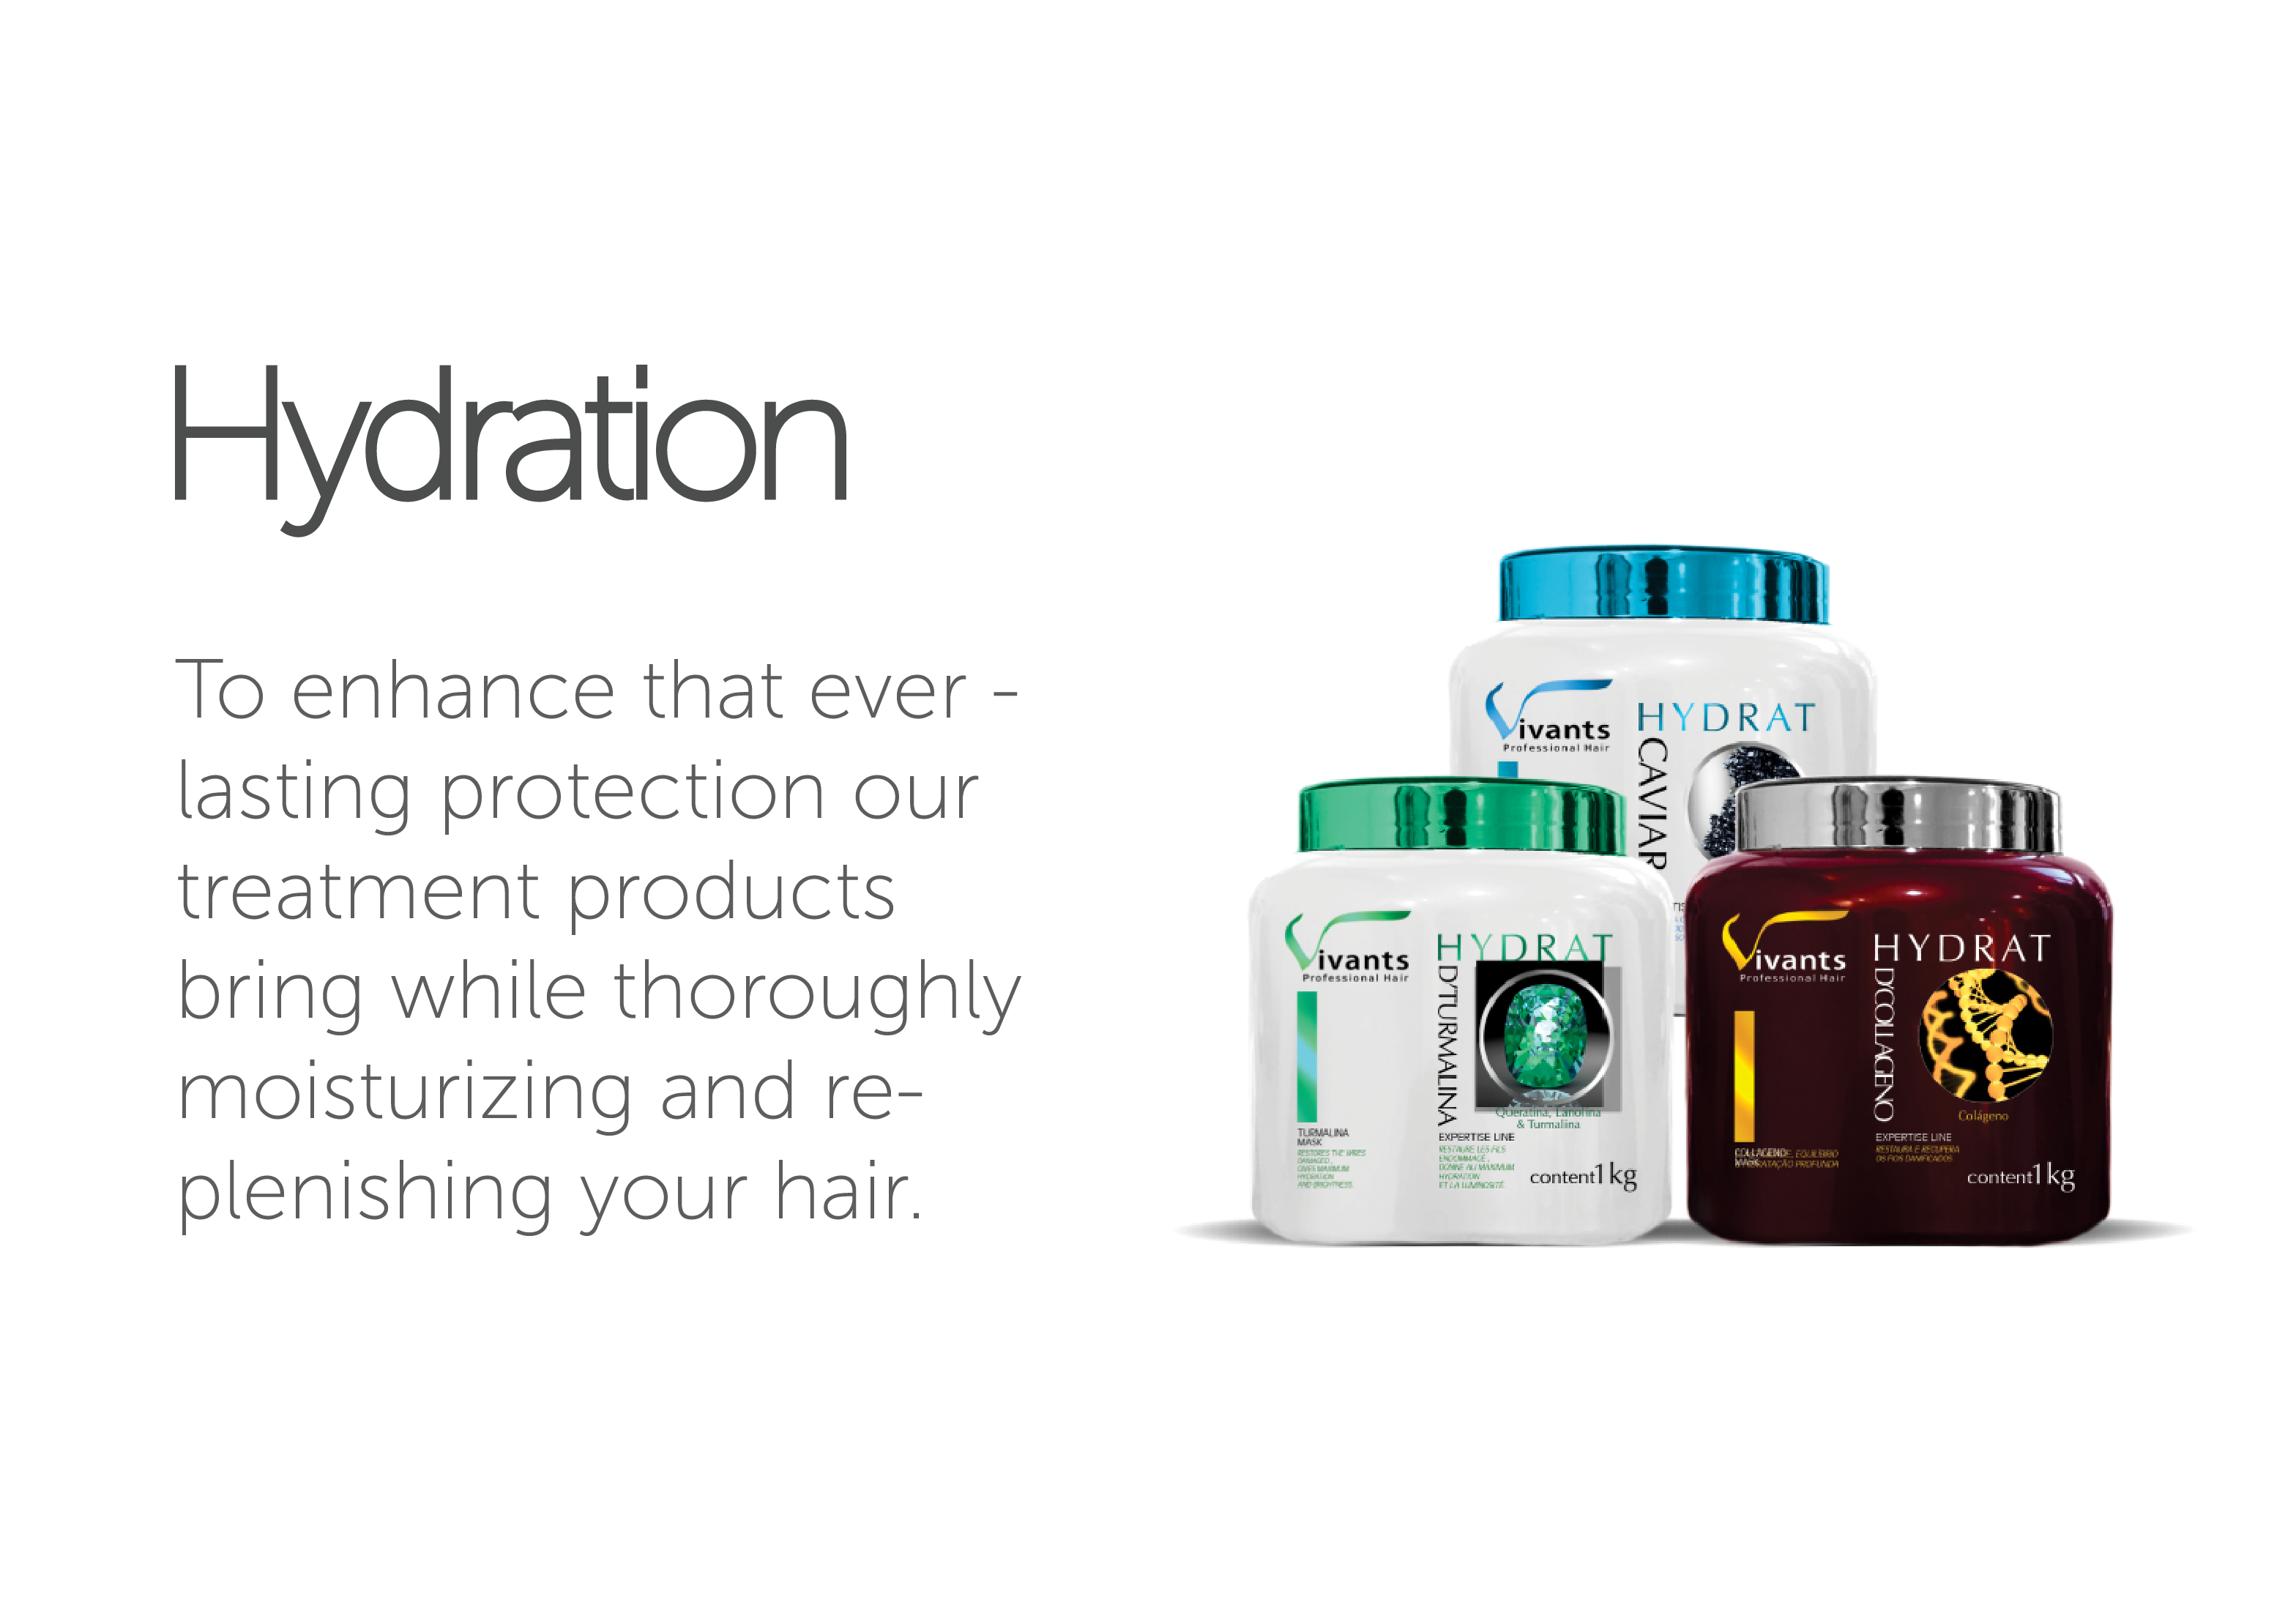 Hydration - To enhance that everlasting protection our treatment products bring while thoroughly moisturizing and replenishing your hair.